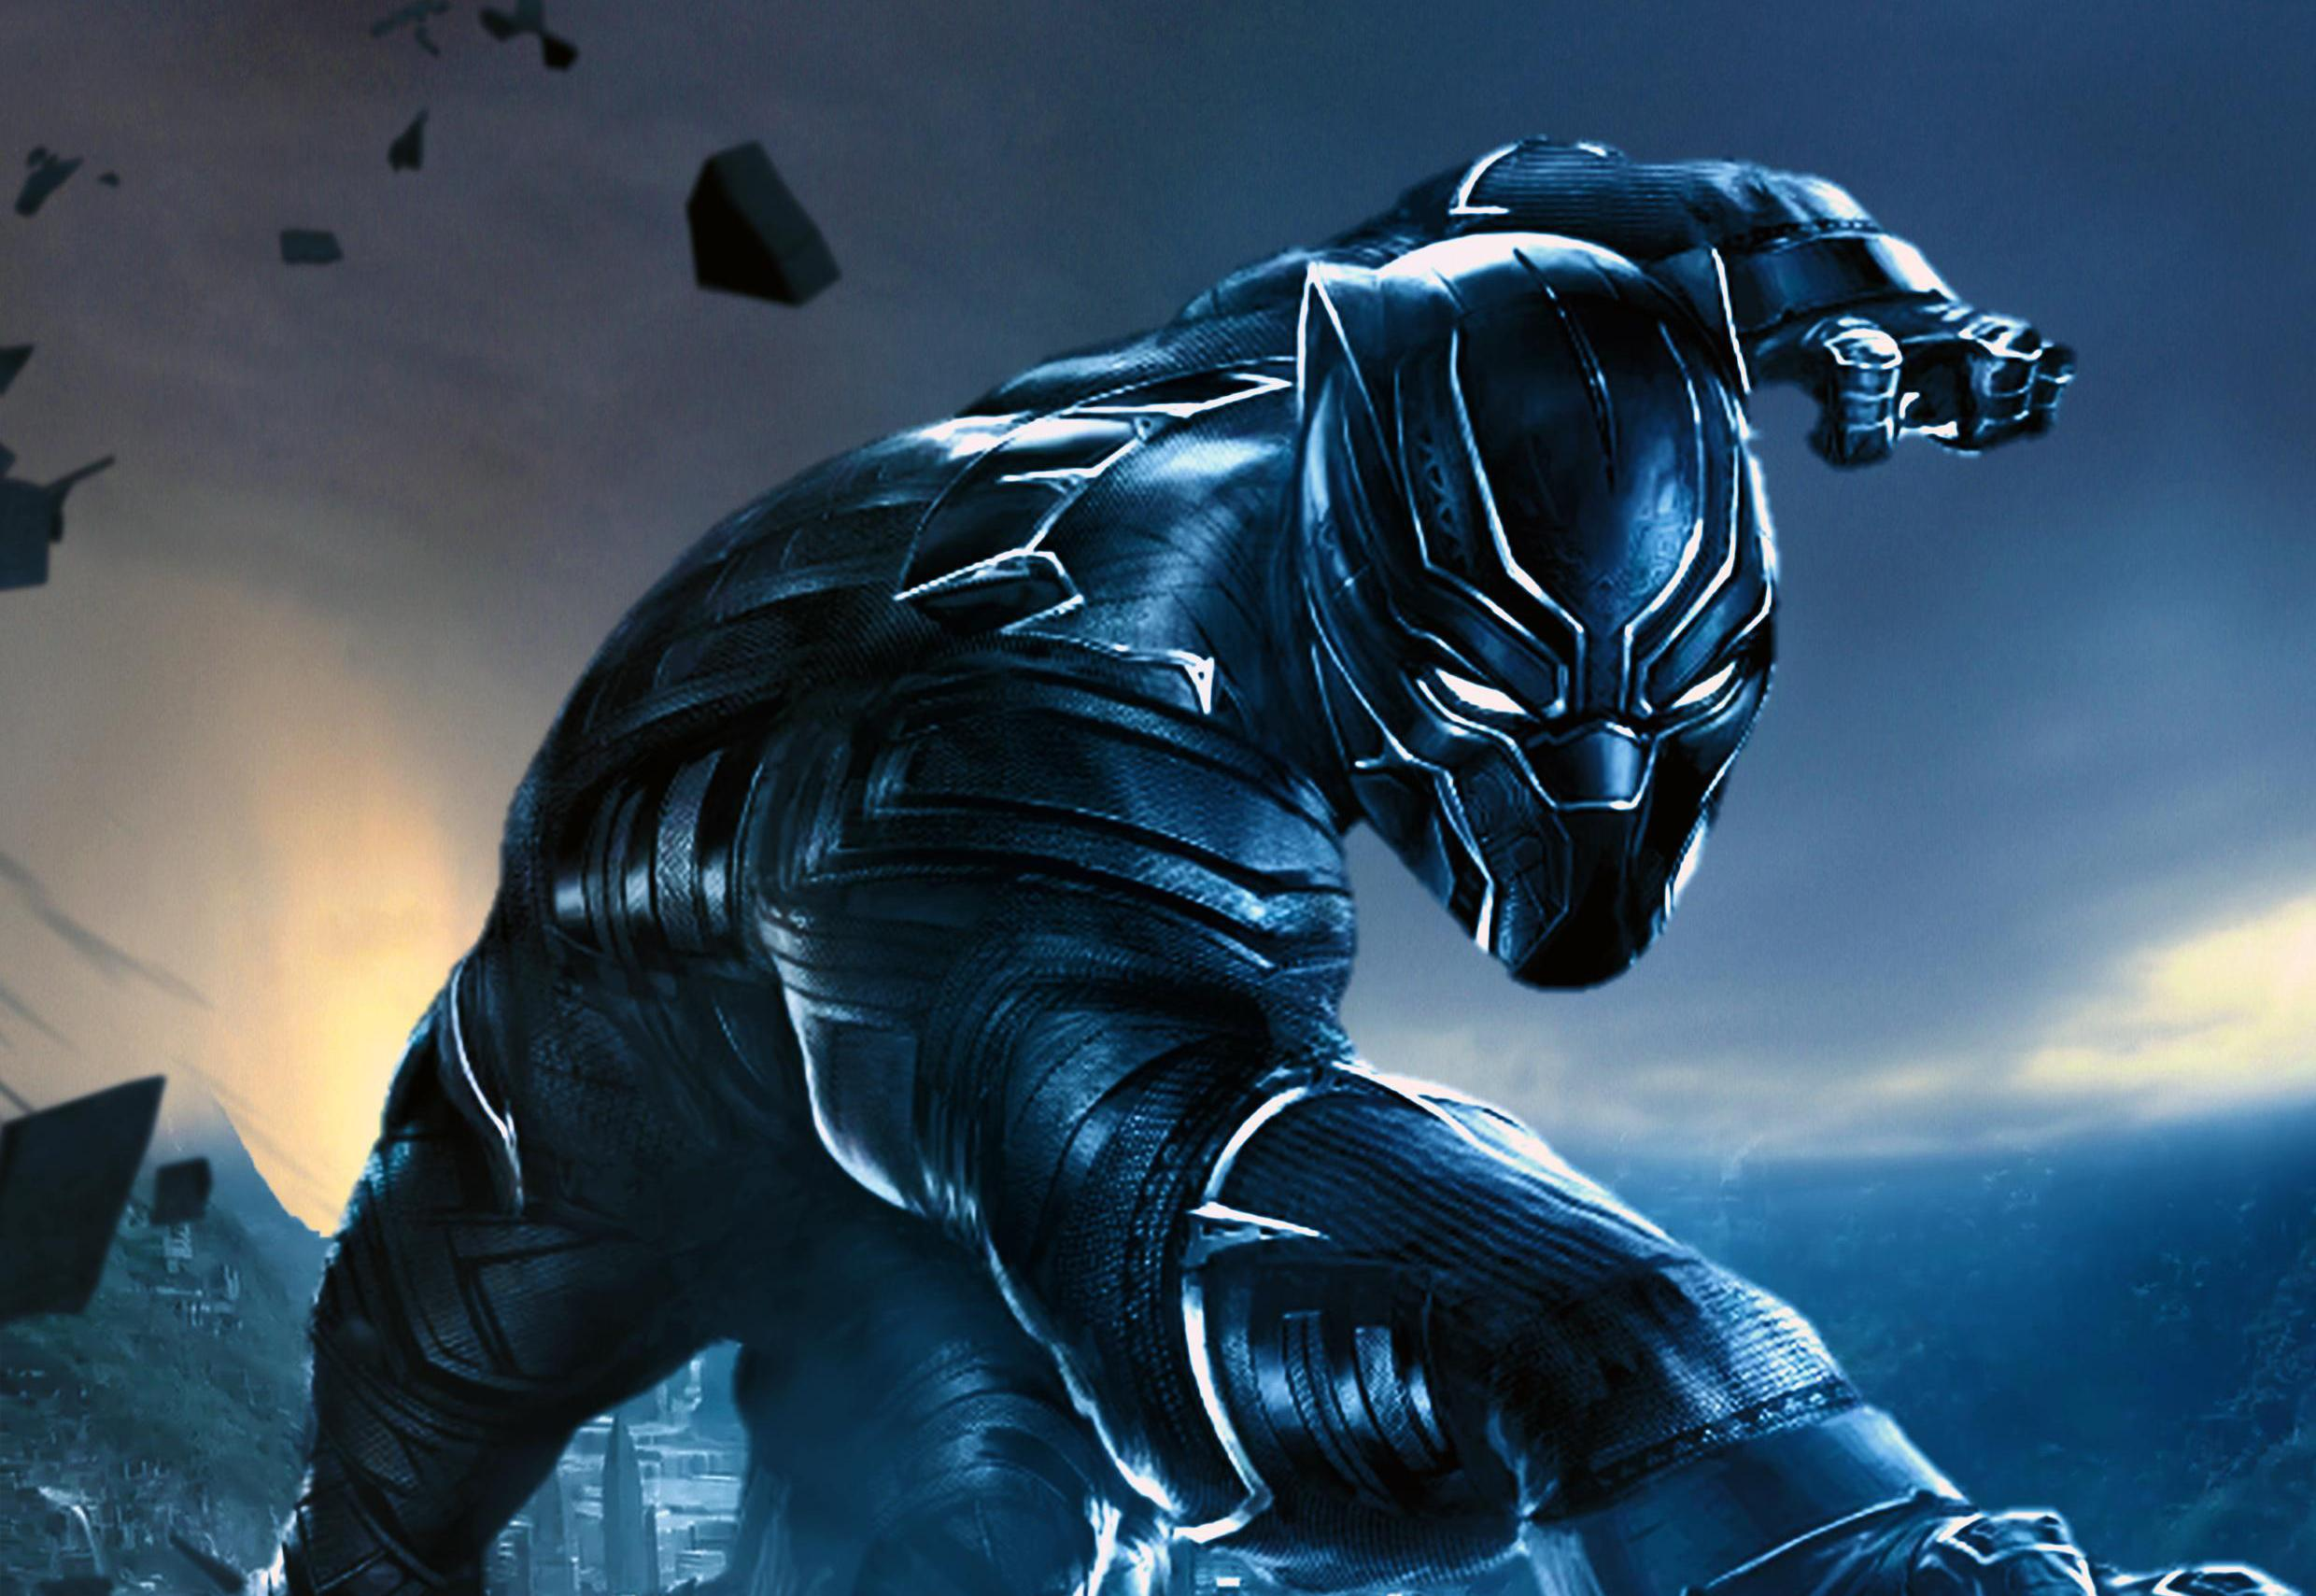 Download Black Panther Wallpaper Hd Backgrounds Download Itl Cat